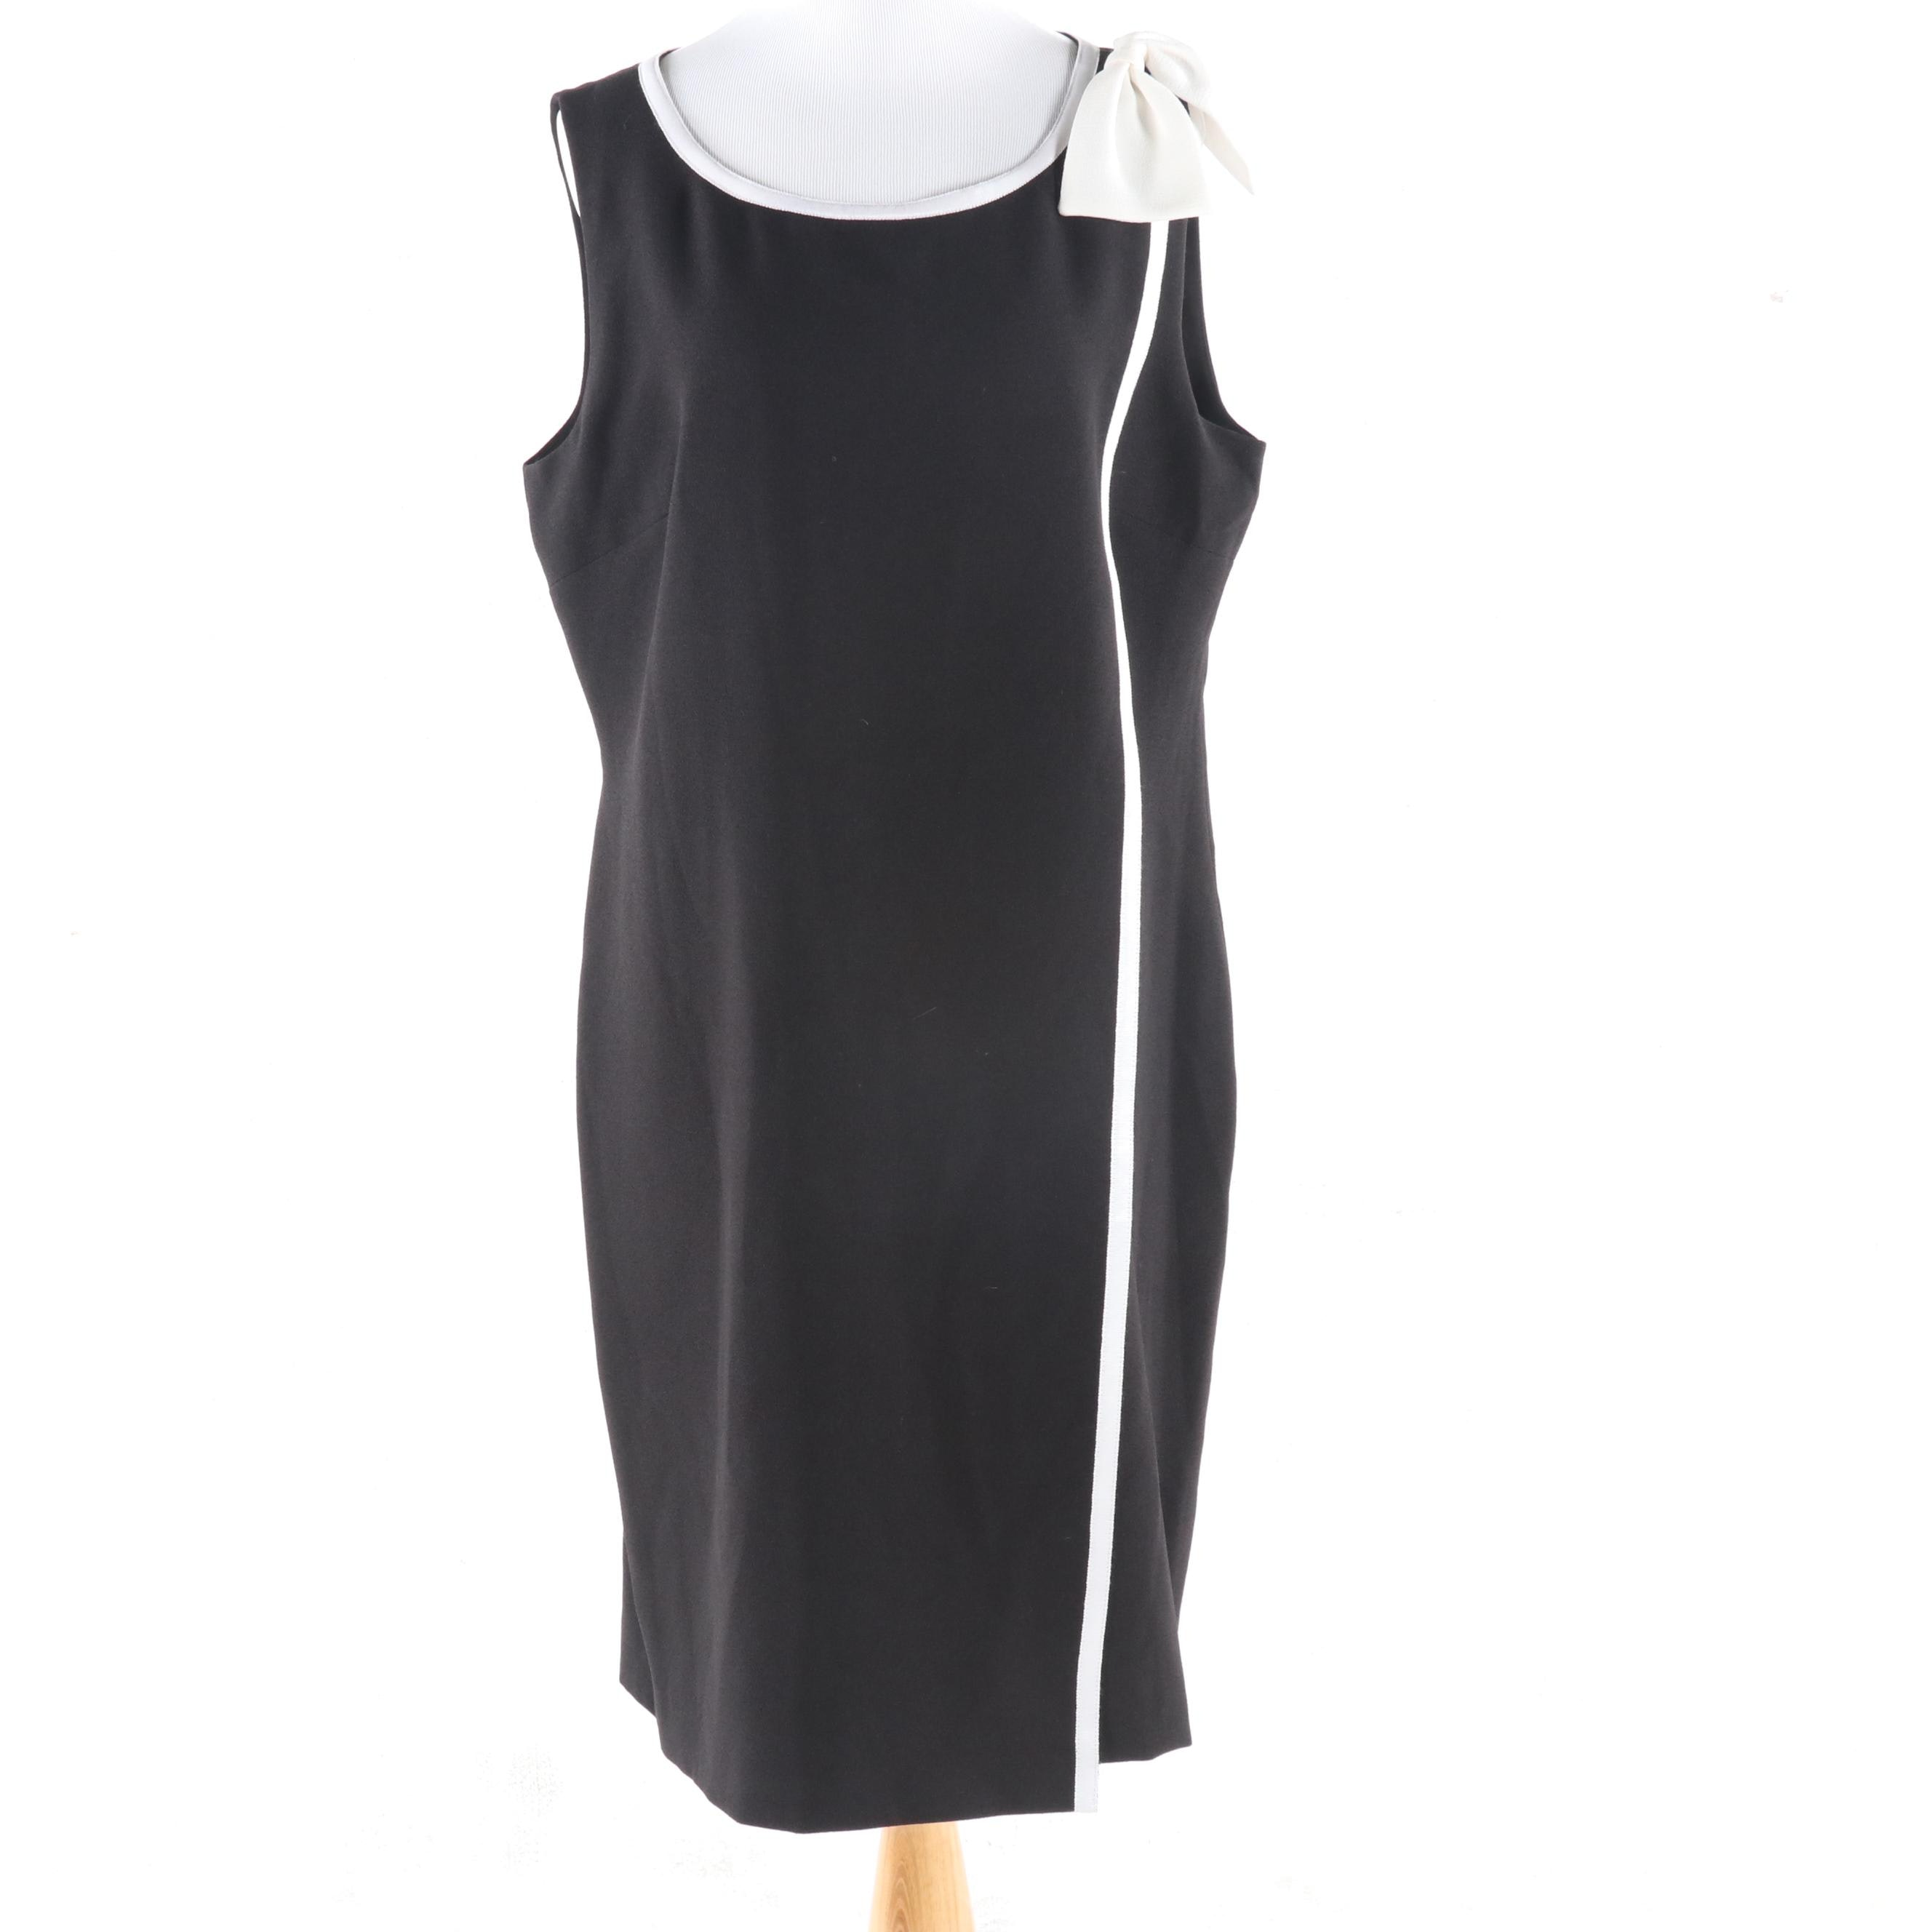 Karl Lagerfeld Paris Black Crepe Sleeveless Shift Dress